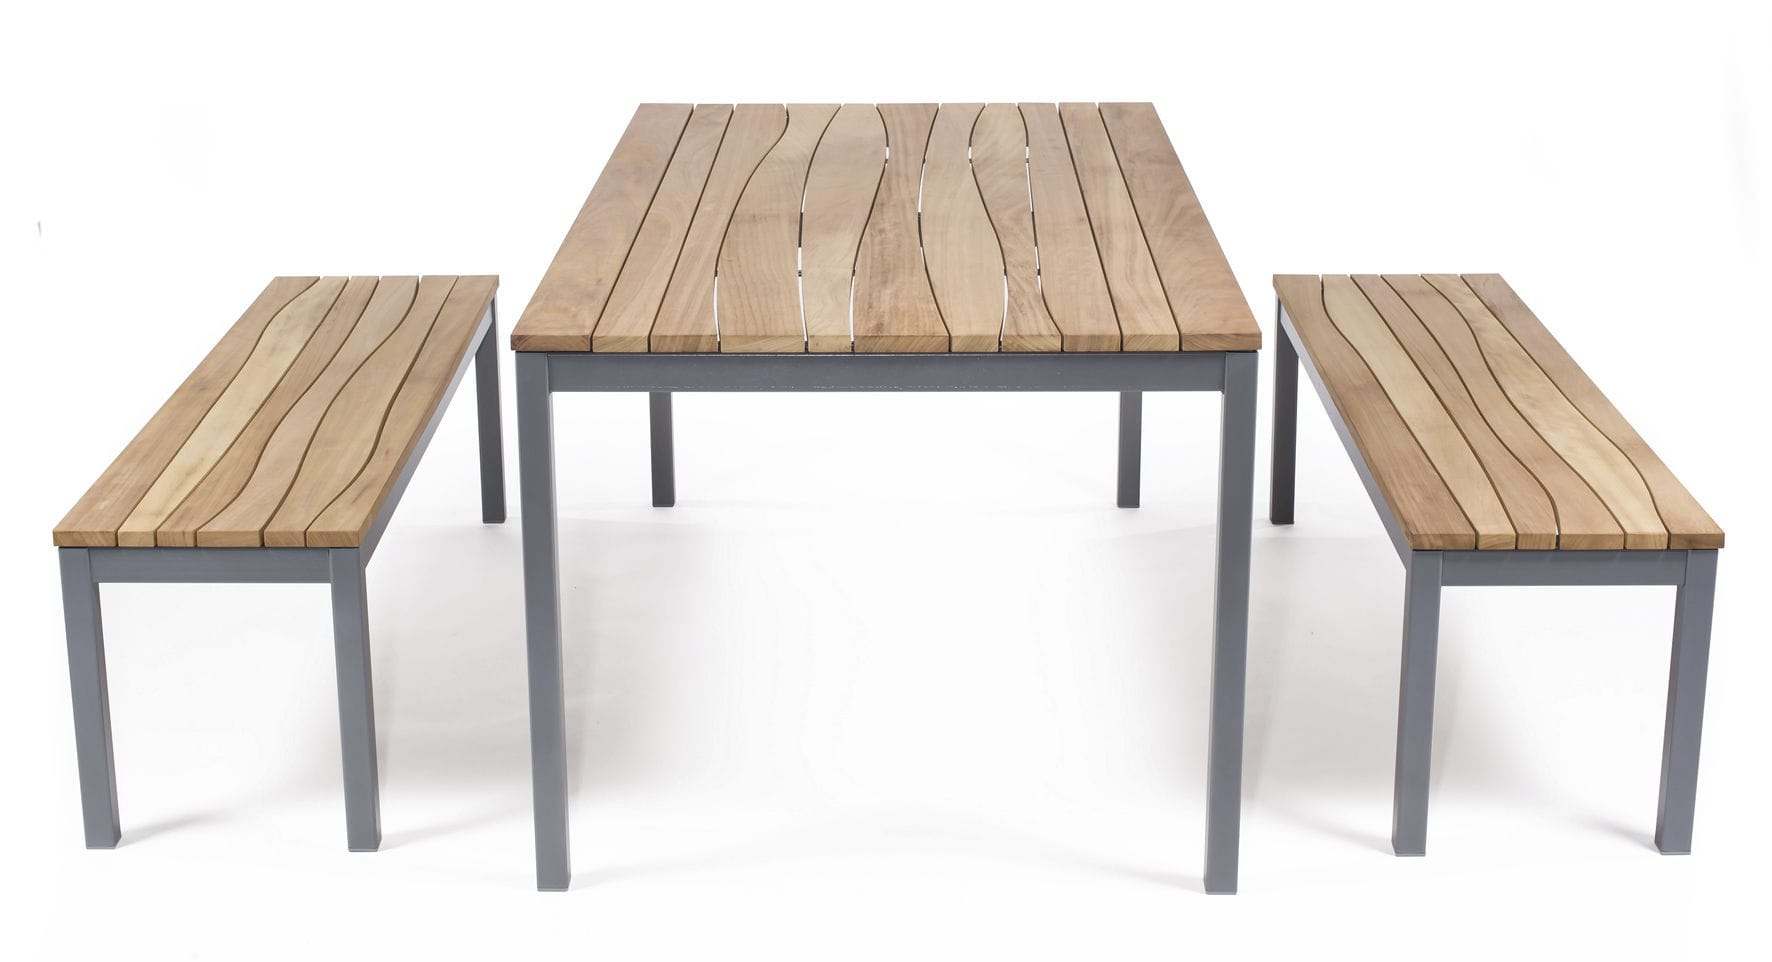 Contemporary bench and table set / steel / wooden / indoor - WAVE by ...